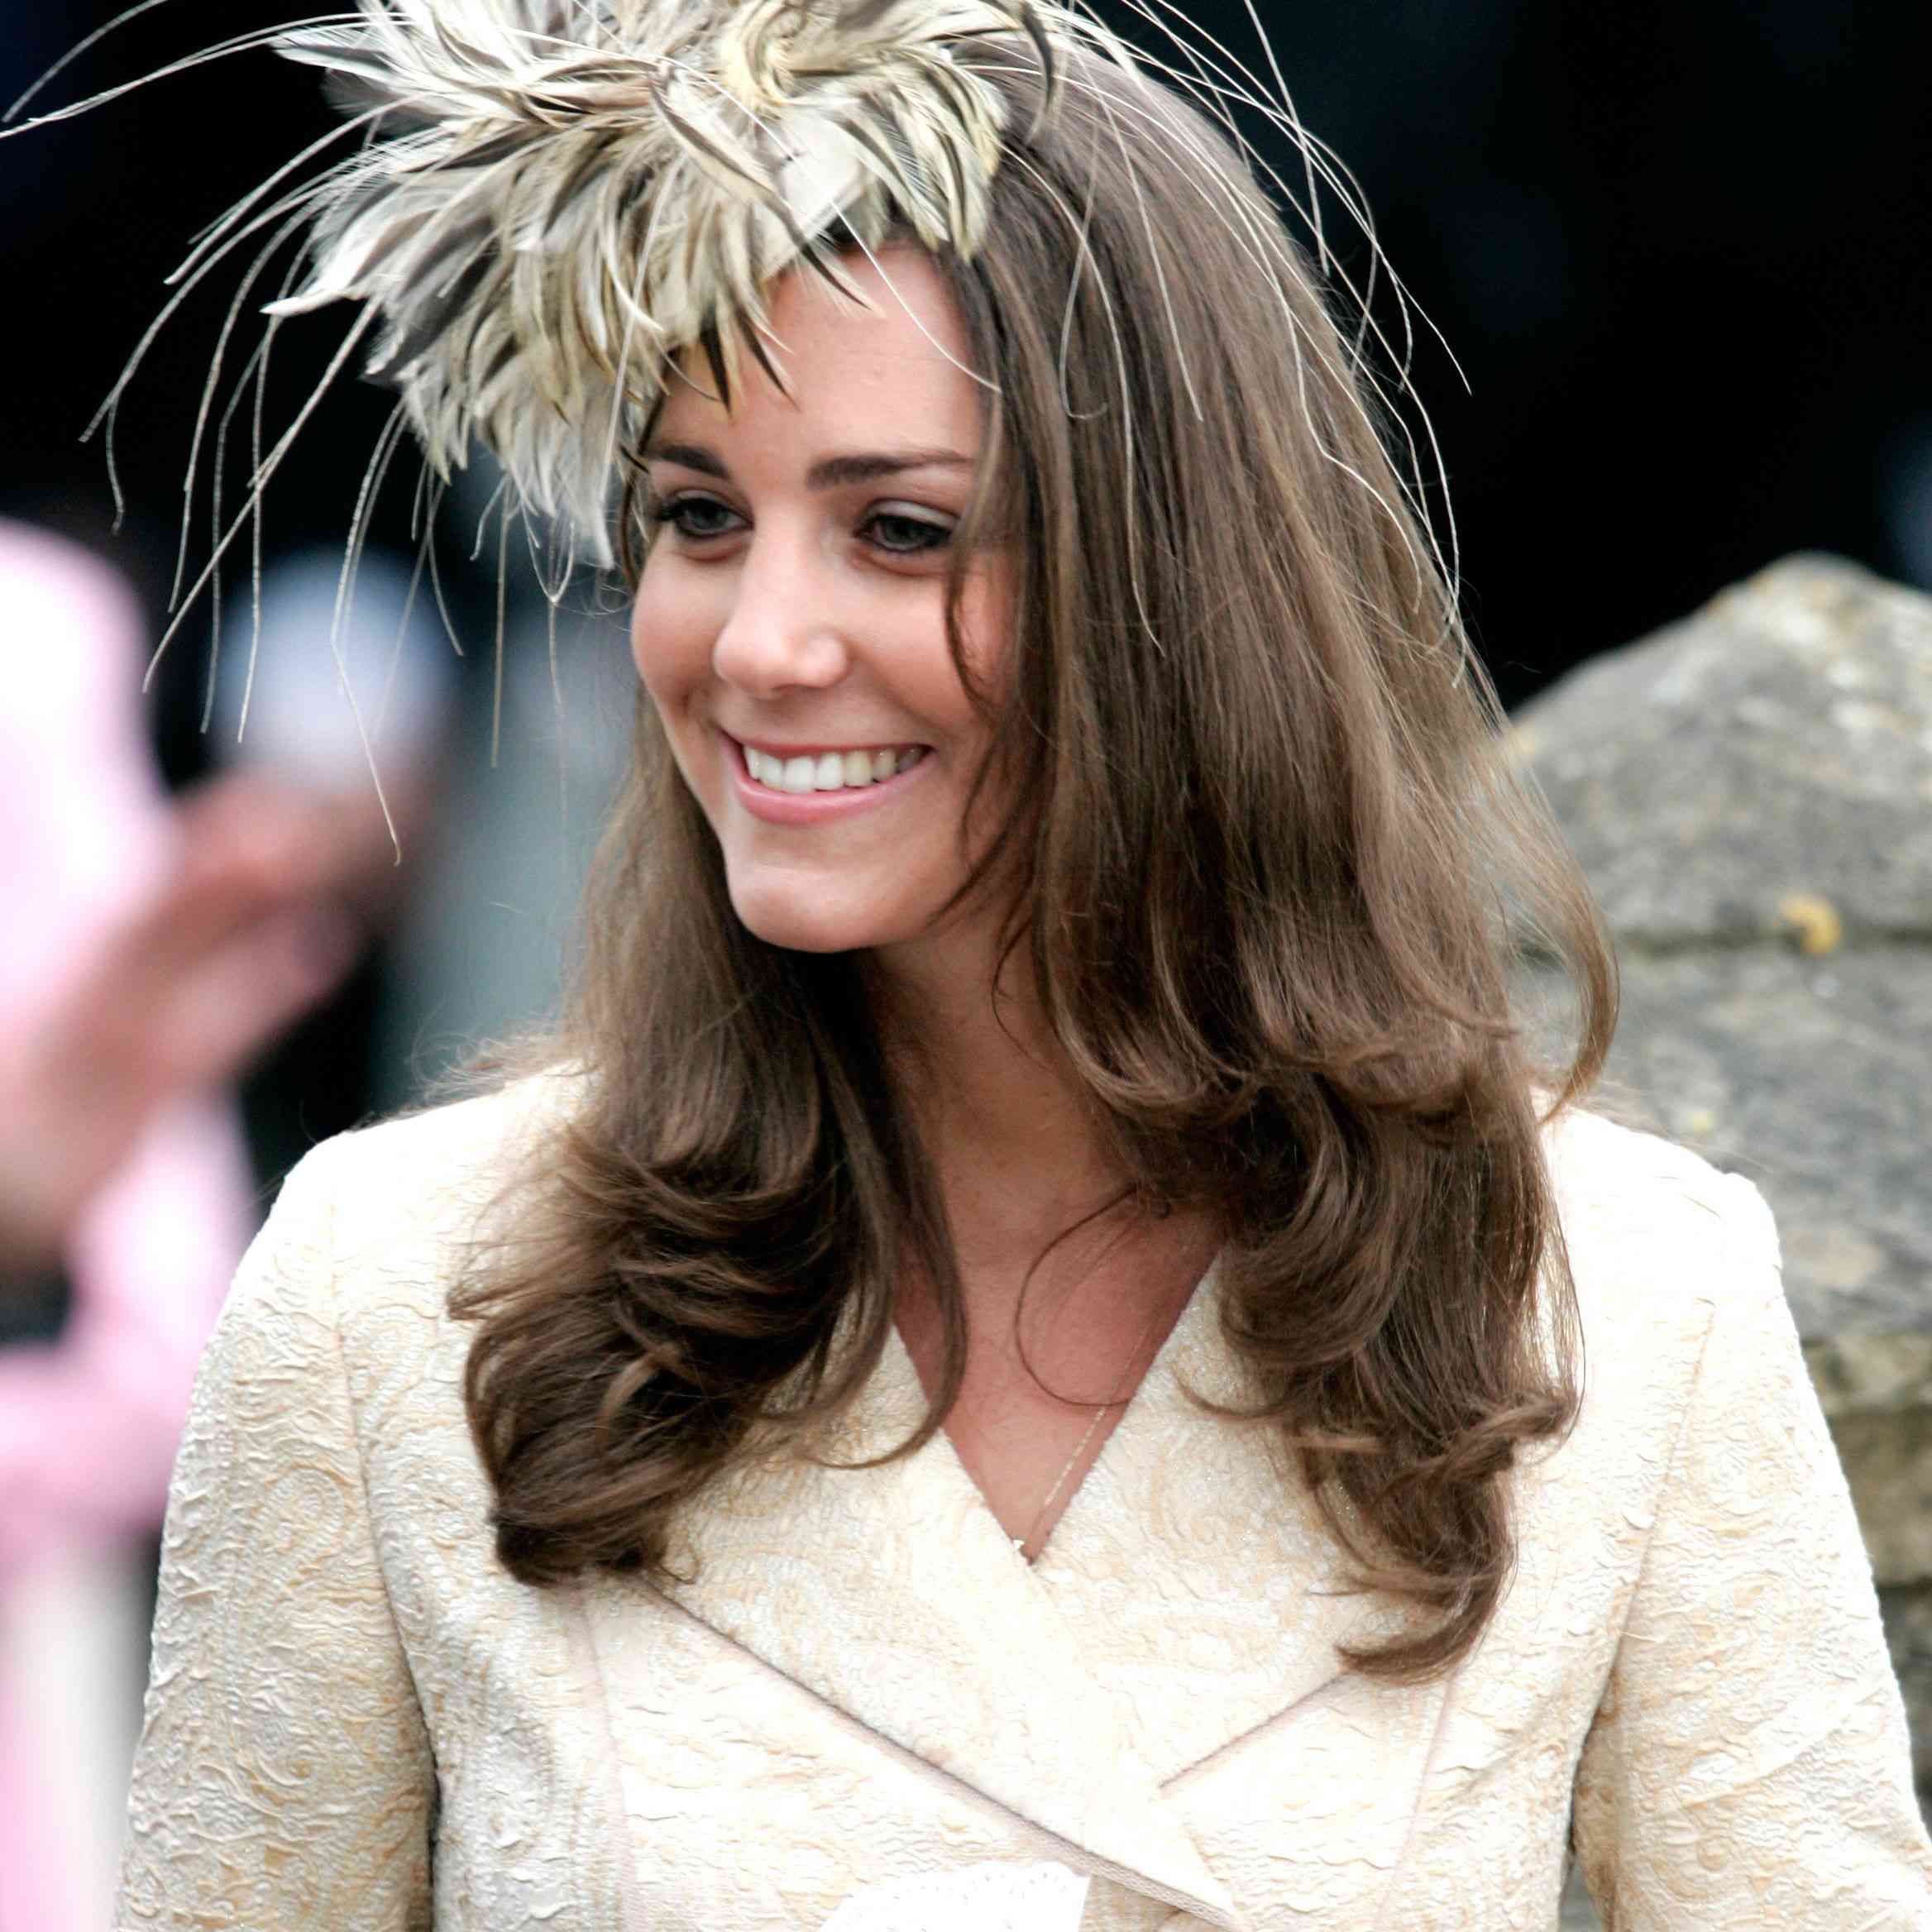 Kate Middleton at the wedding of Laura Parker Bowles and Harry Lopes at St Cyriac's Church, Lacock